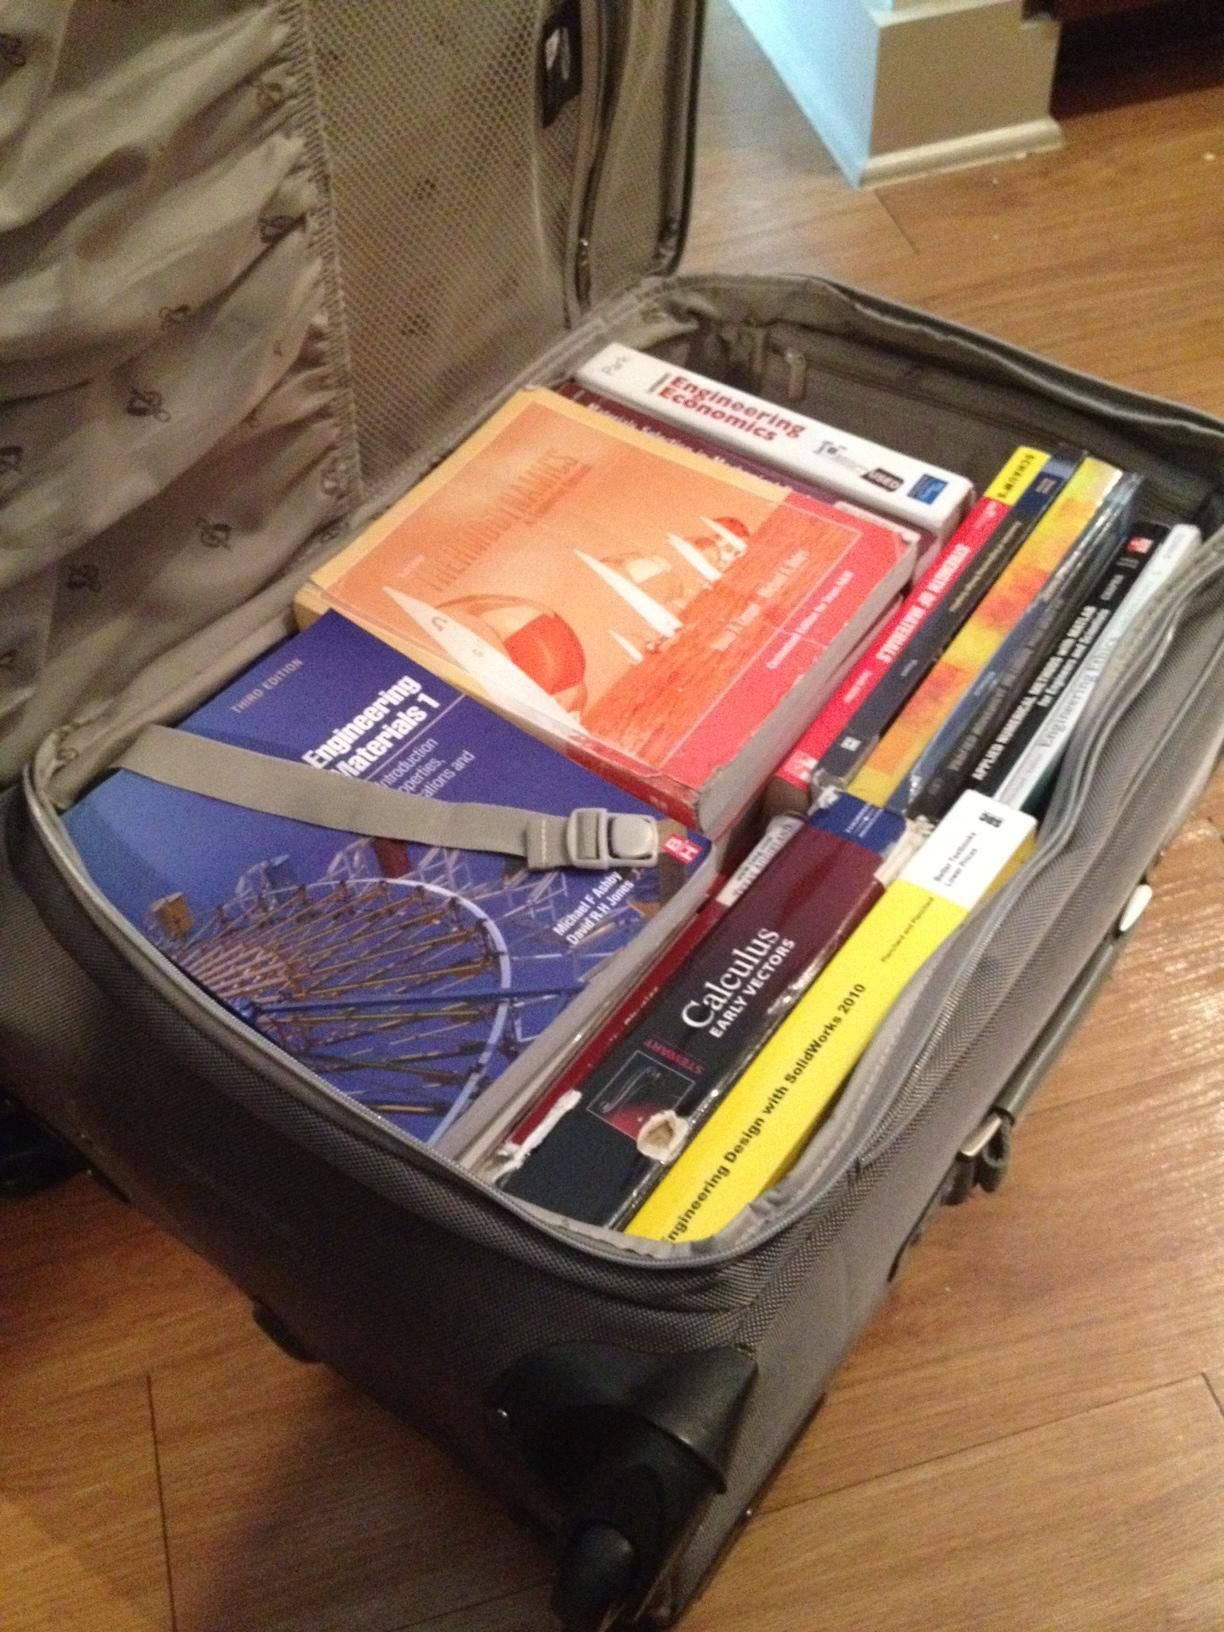 Lpt When Moving Pack Heavy Items Like Books In A Rolling